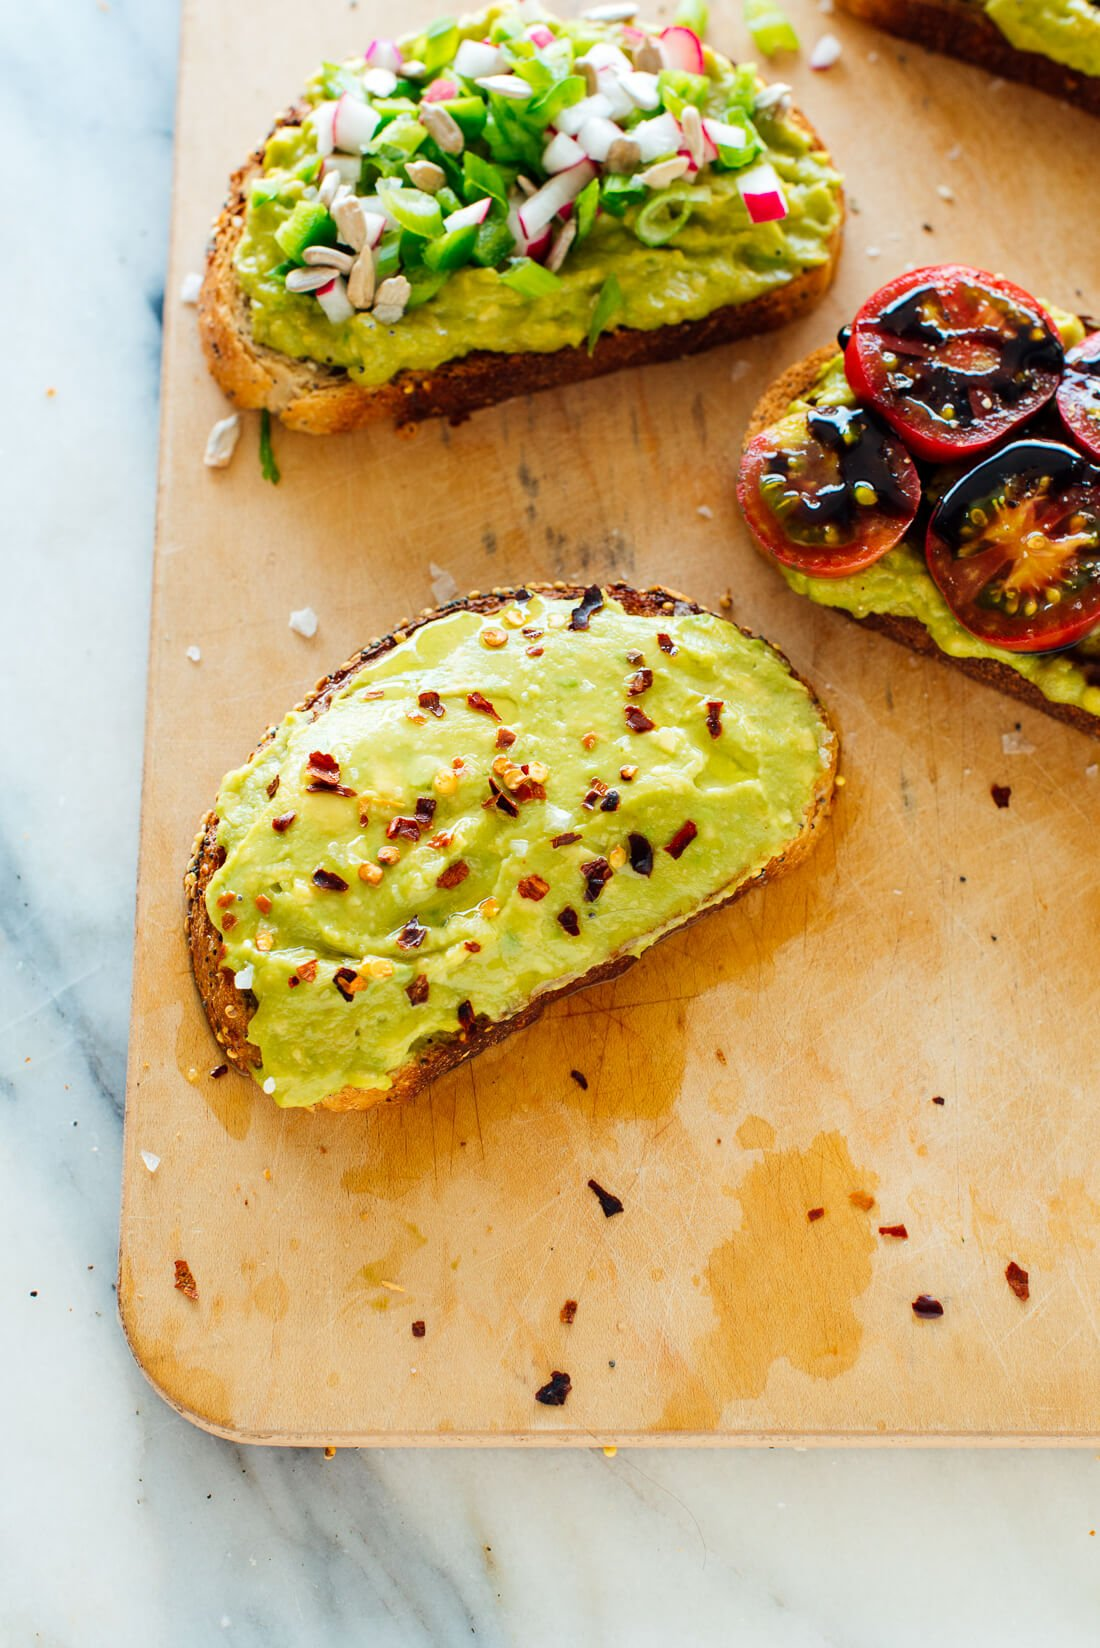 Avocado toast with bell pepper flakes, lemon juice and olive oil